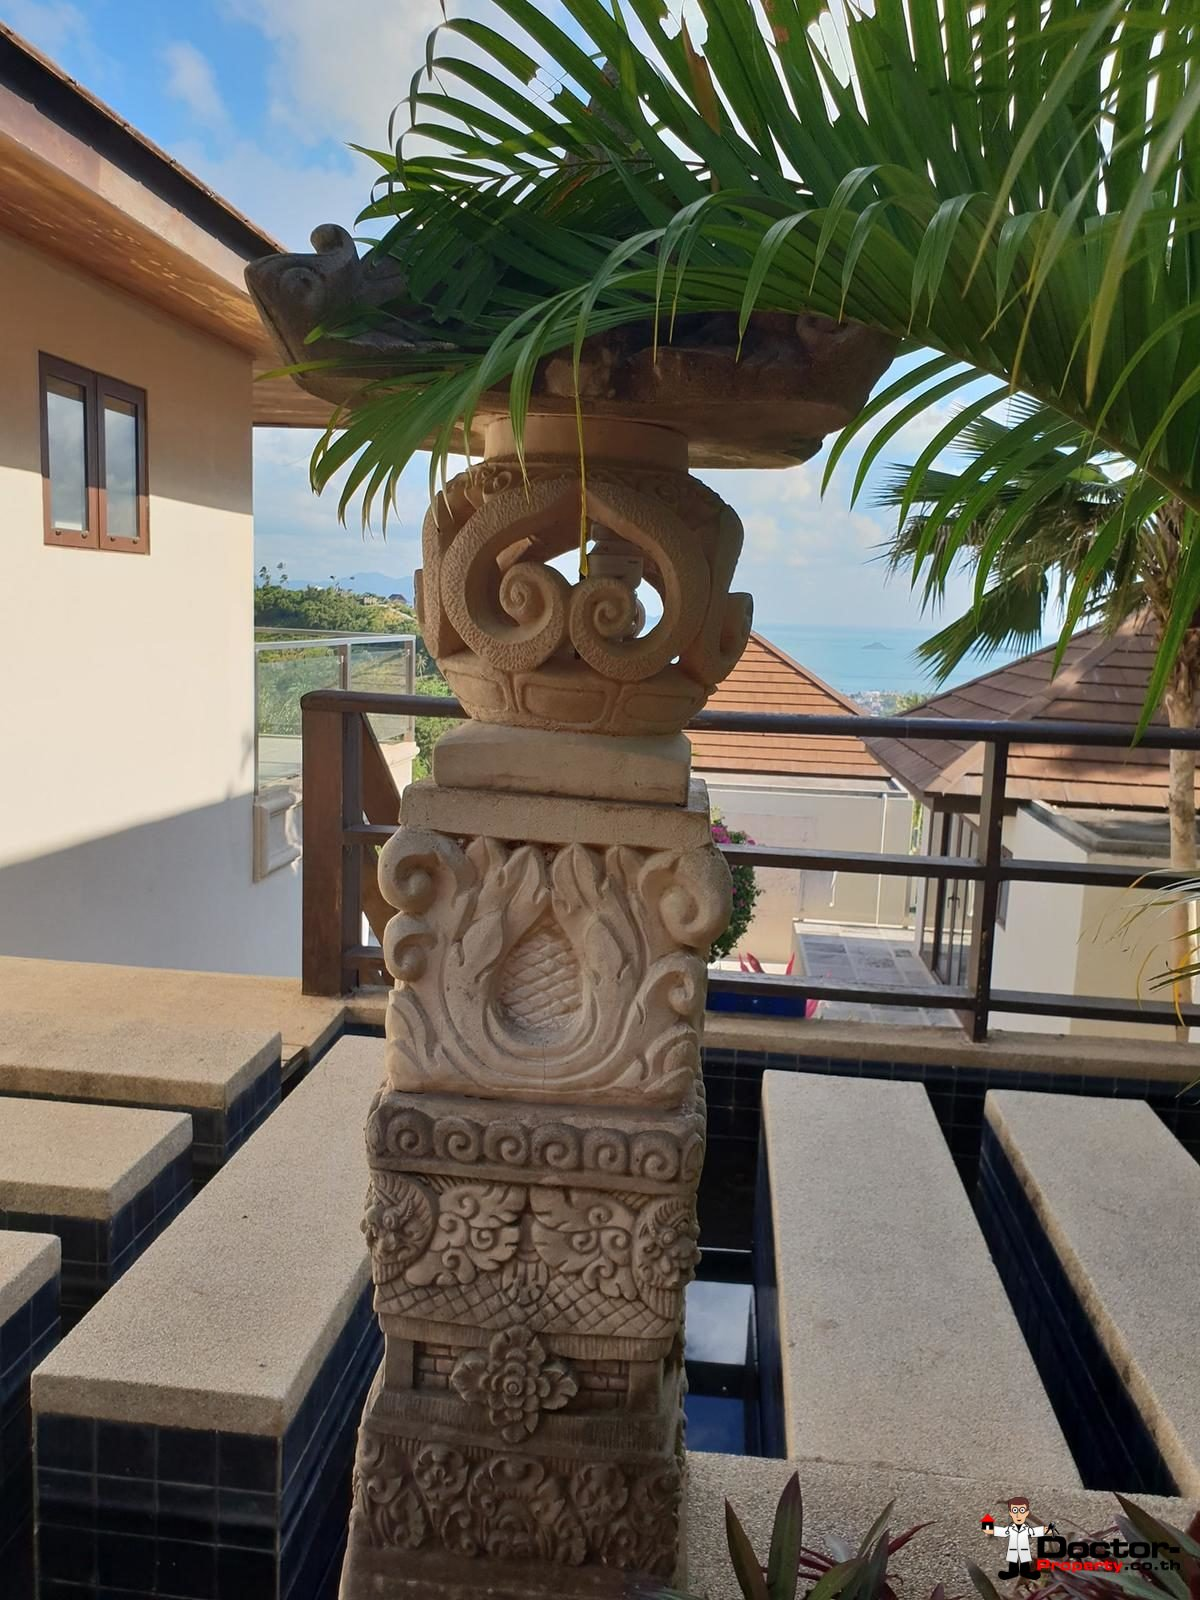 6 Bedroom Villa with Sea View - Bophut - Koh Samui - for sale 13